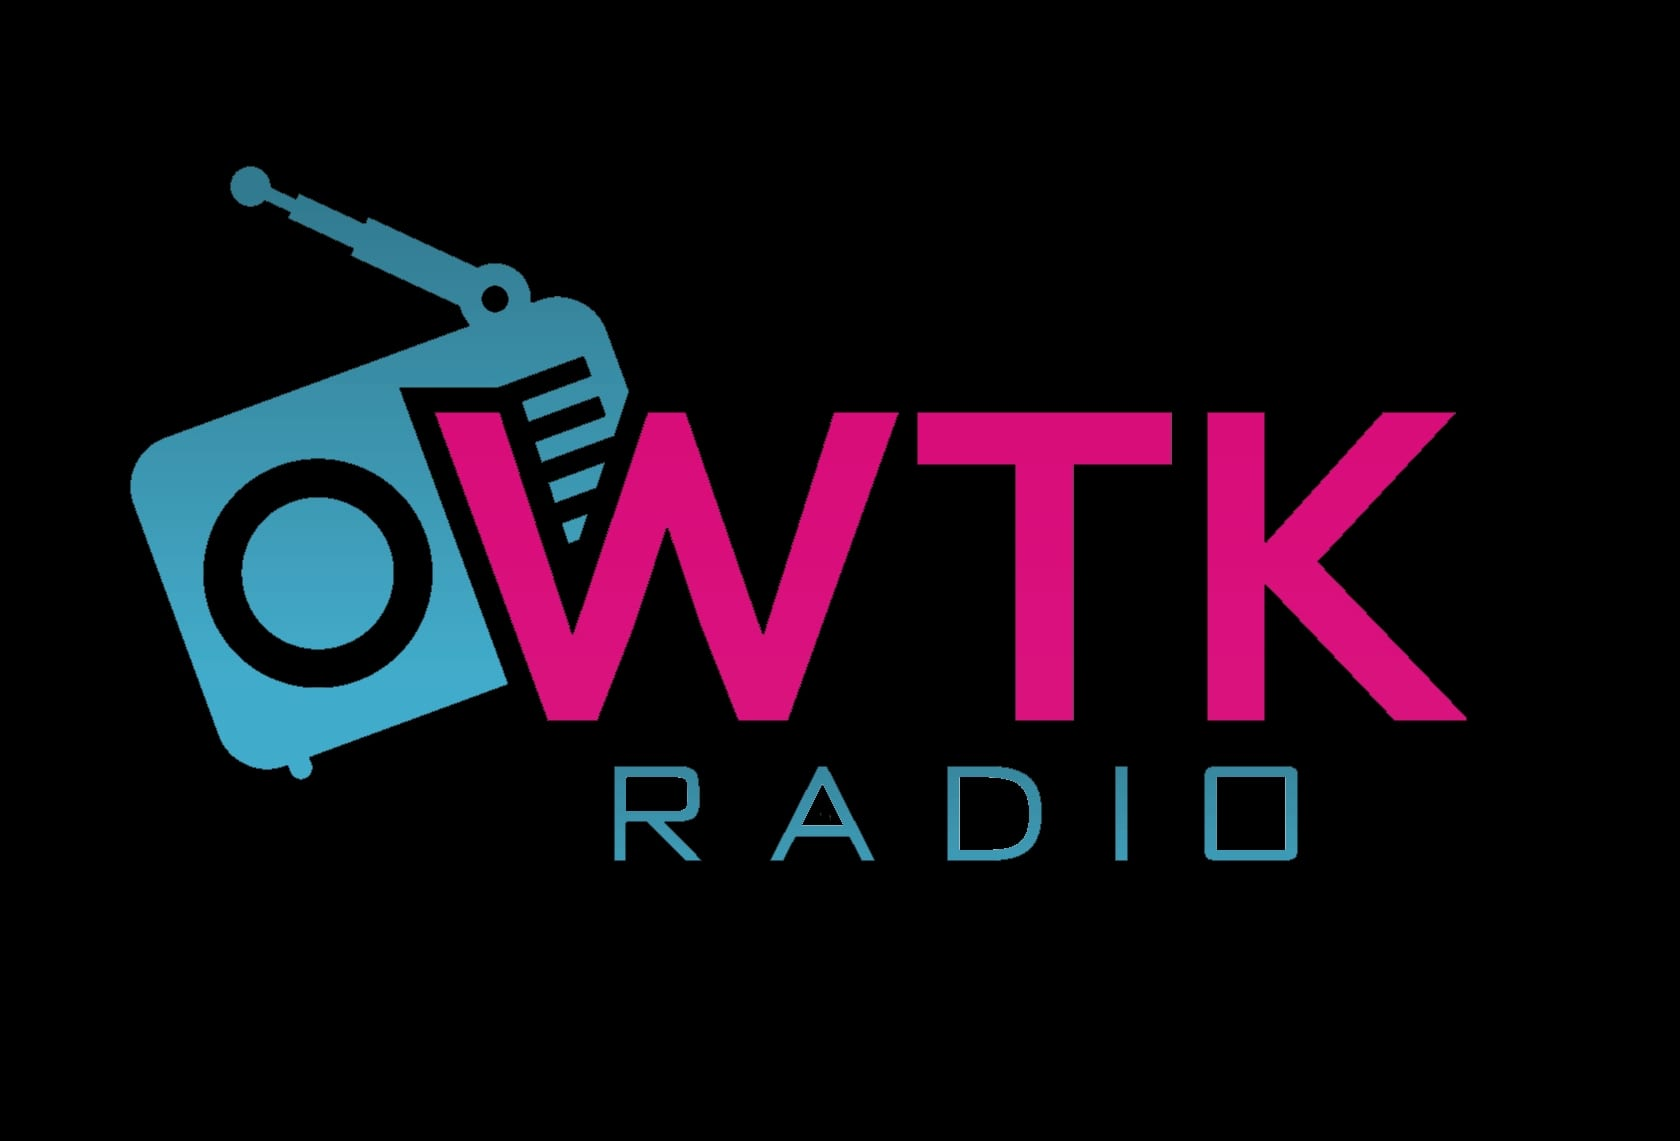 LISTEN: WTK RADIO Has Officially Launched!